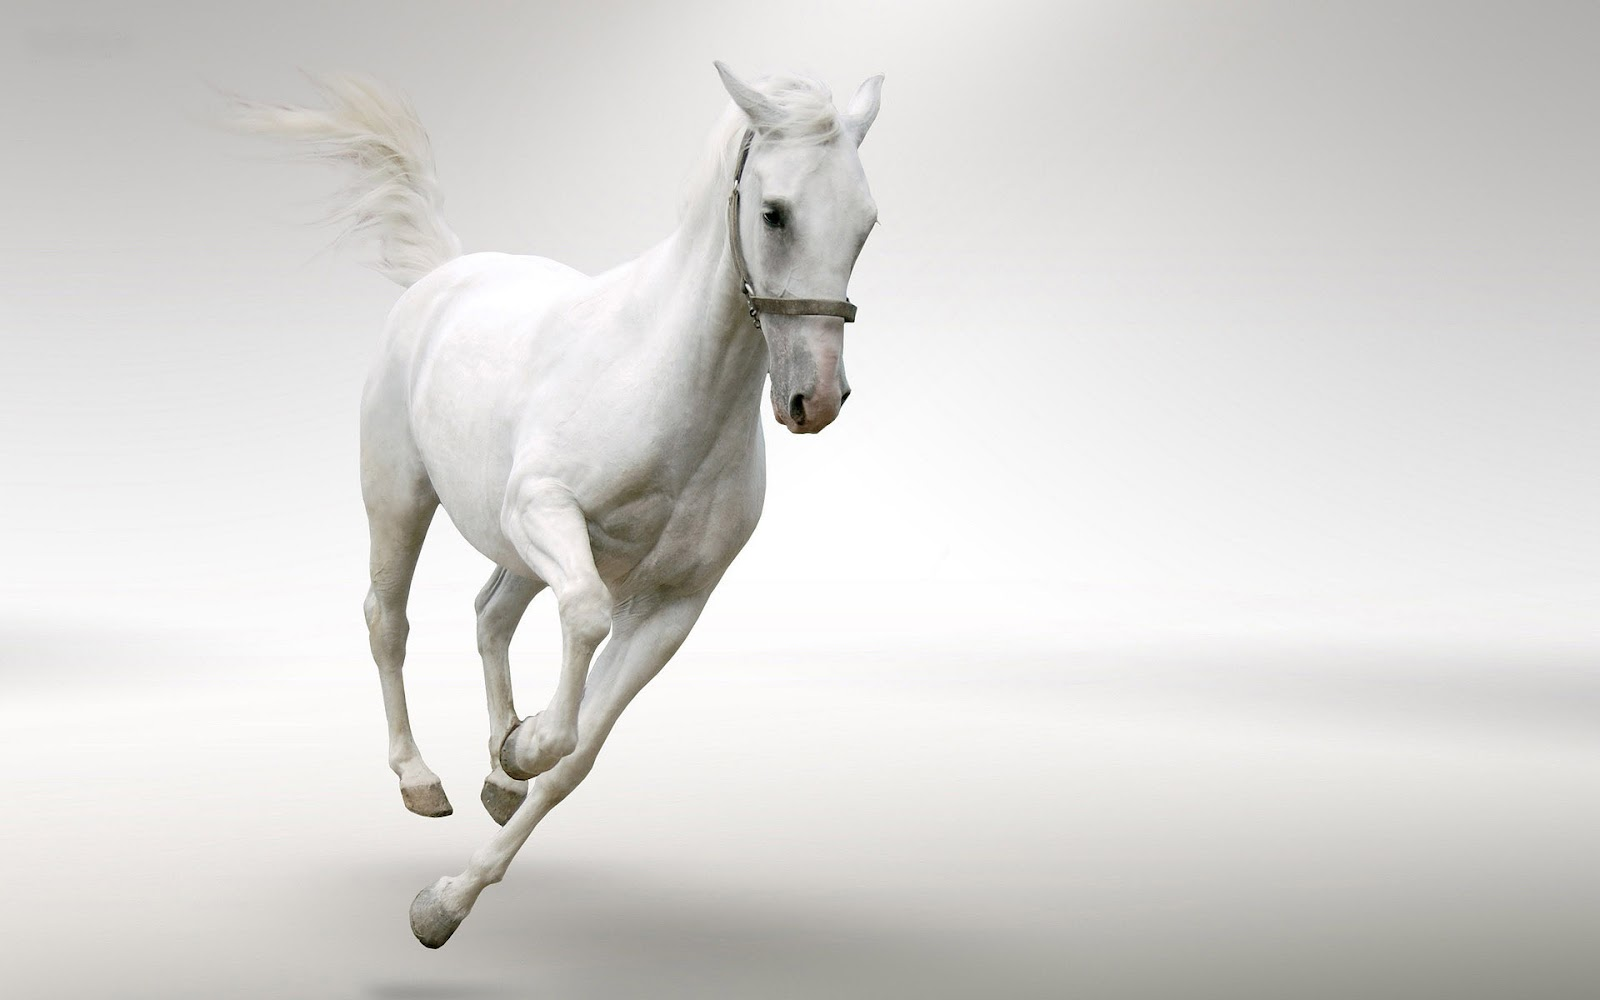 White Horse Wallpaper All Hd Wallpapers Gallery